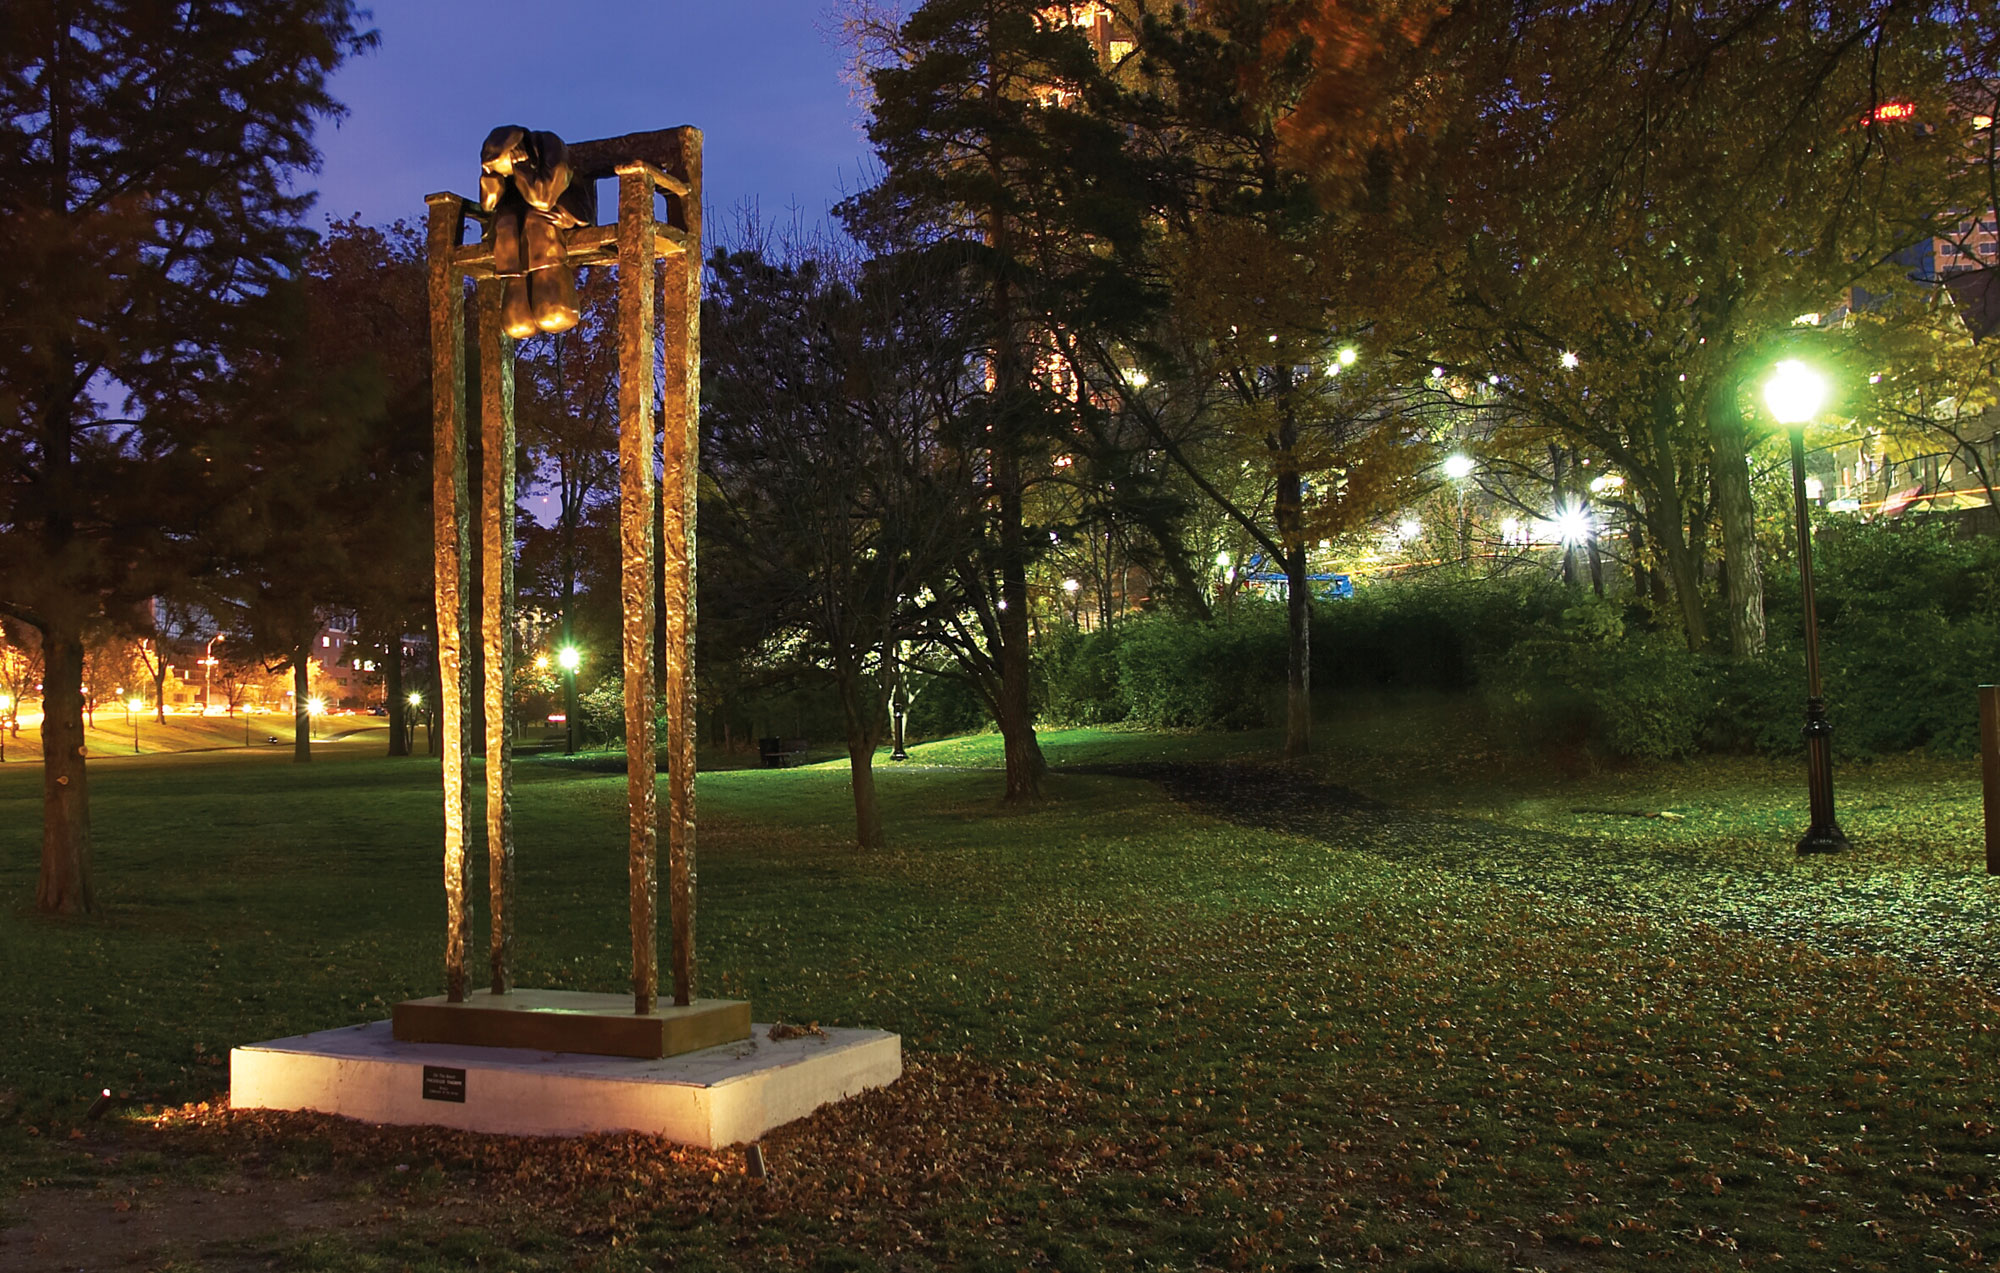 On the bench sculpture at night Mackenzie Thorpe